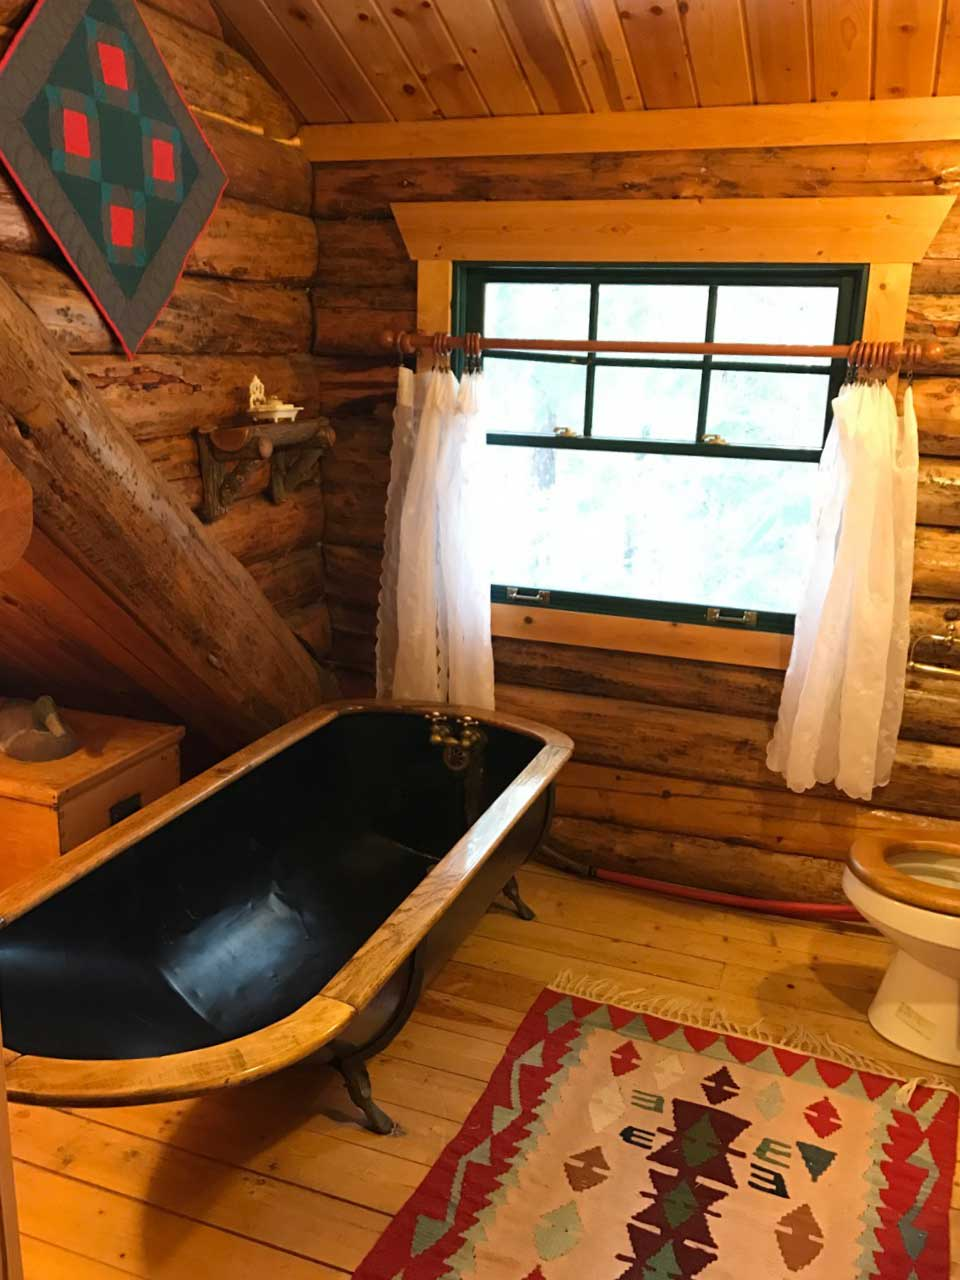 Take a relaxing bath in this antique tub.